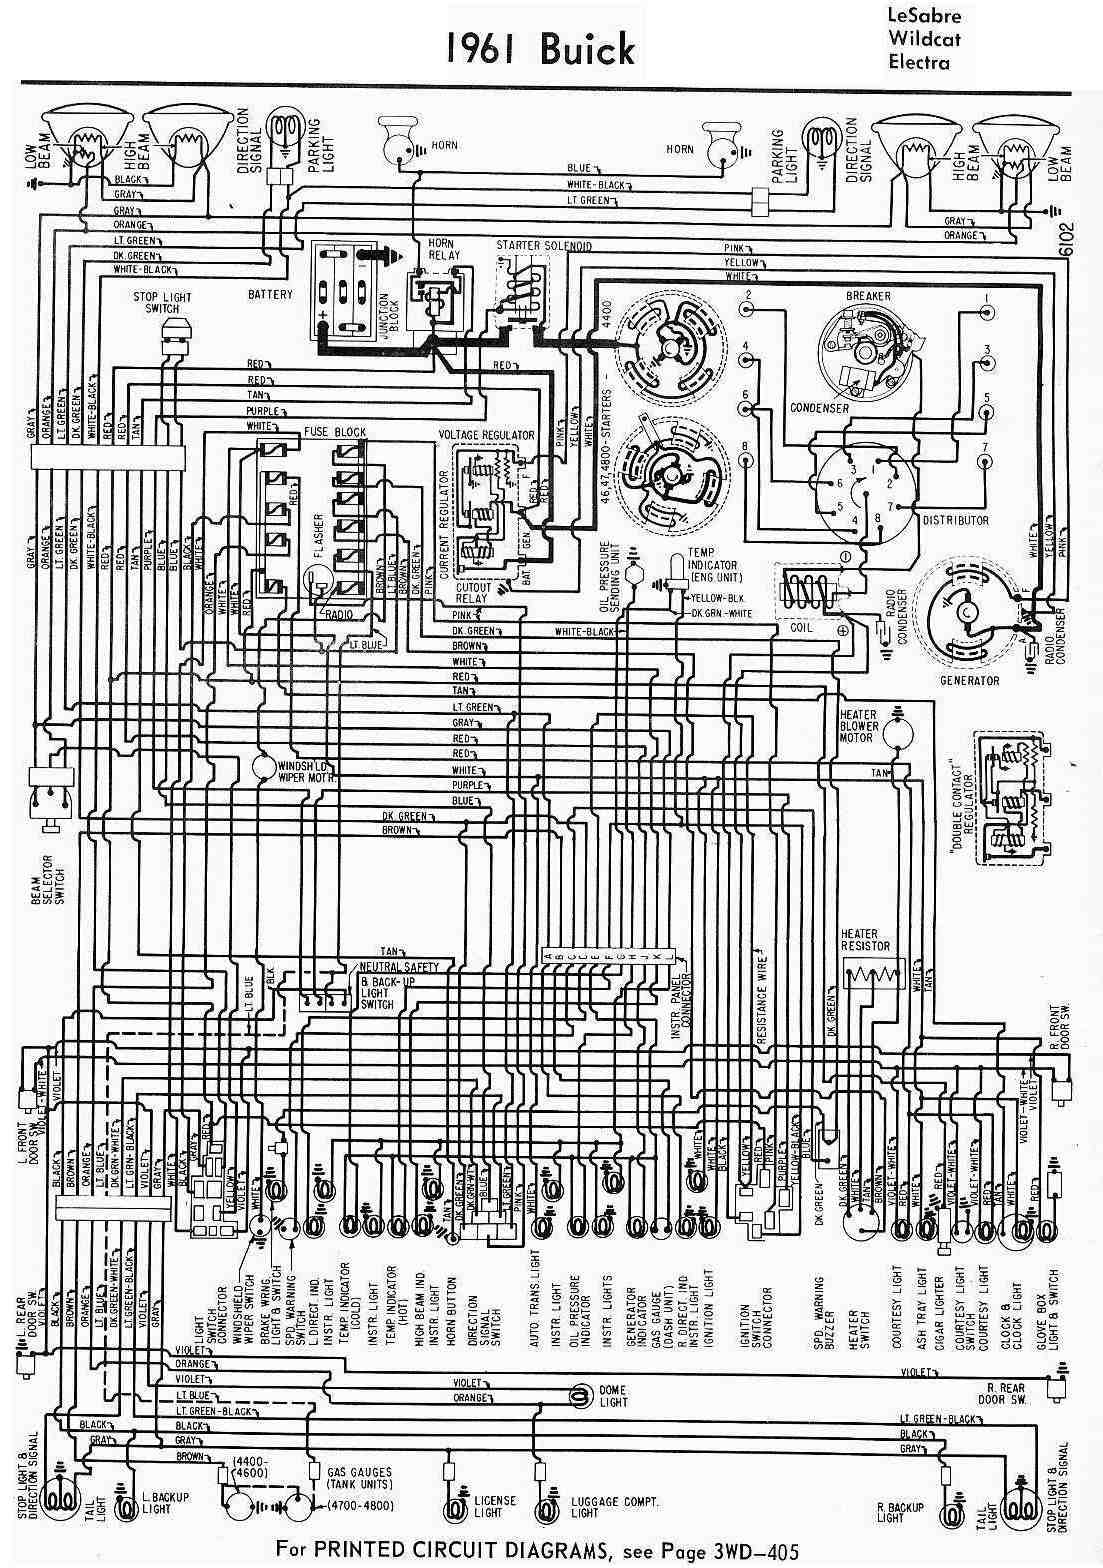 1961 chrysler wiring diagram wiring diagrams posts car diagrams 1961 cadillac wiring diagram 1967 plymouth [ 1103 x 1568 Pixel ]